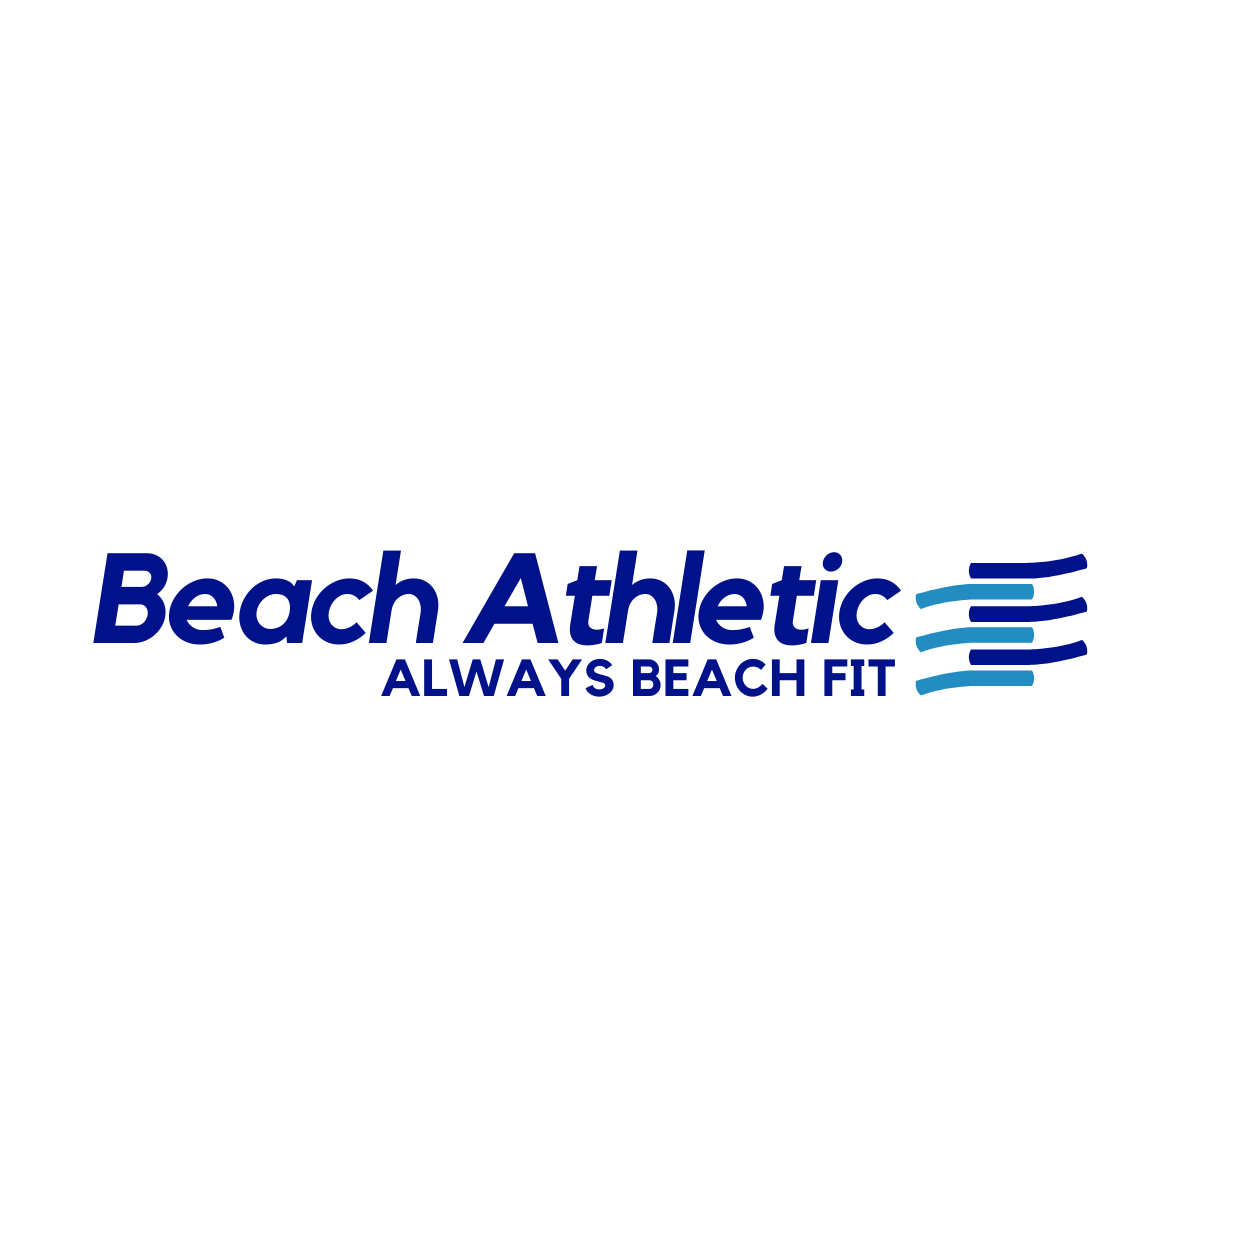 Beach Athletic